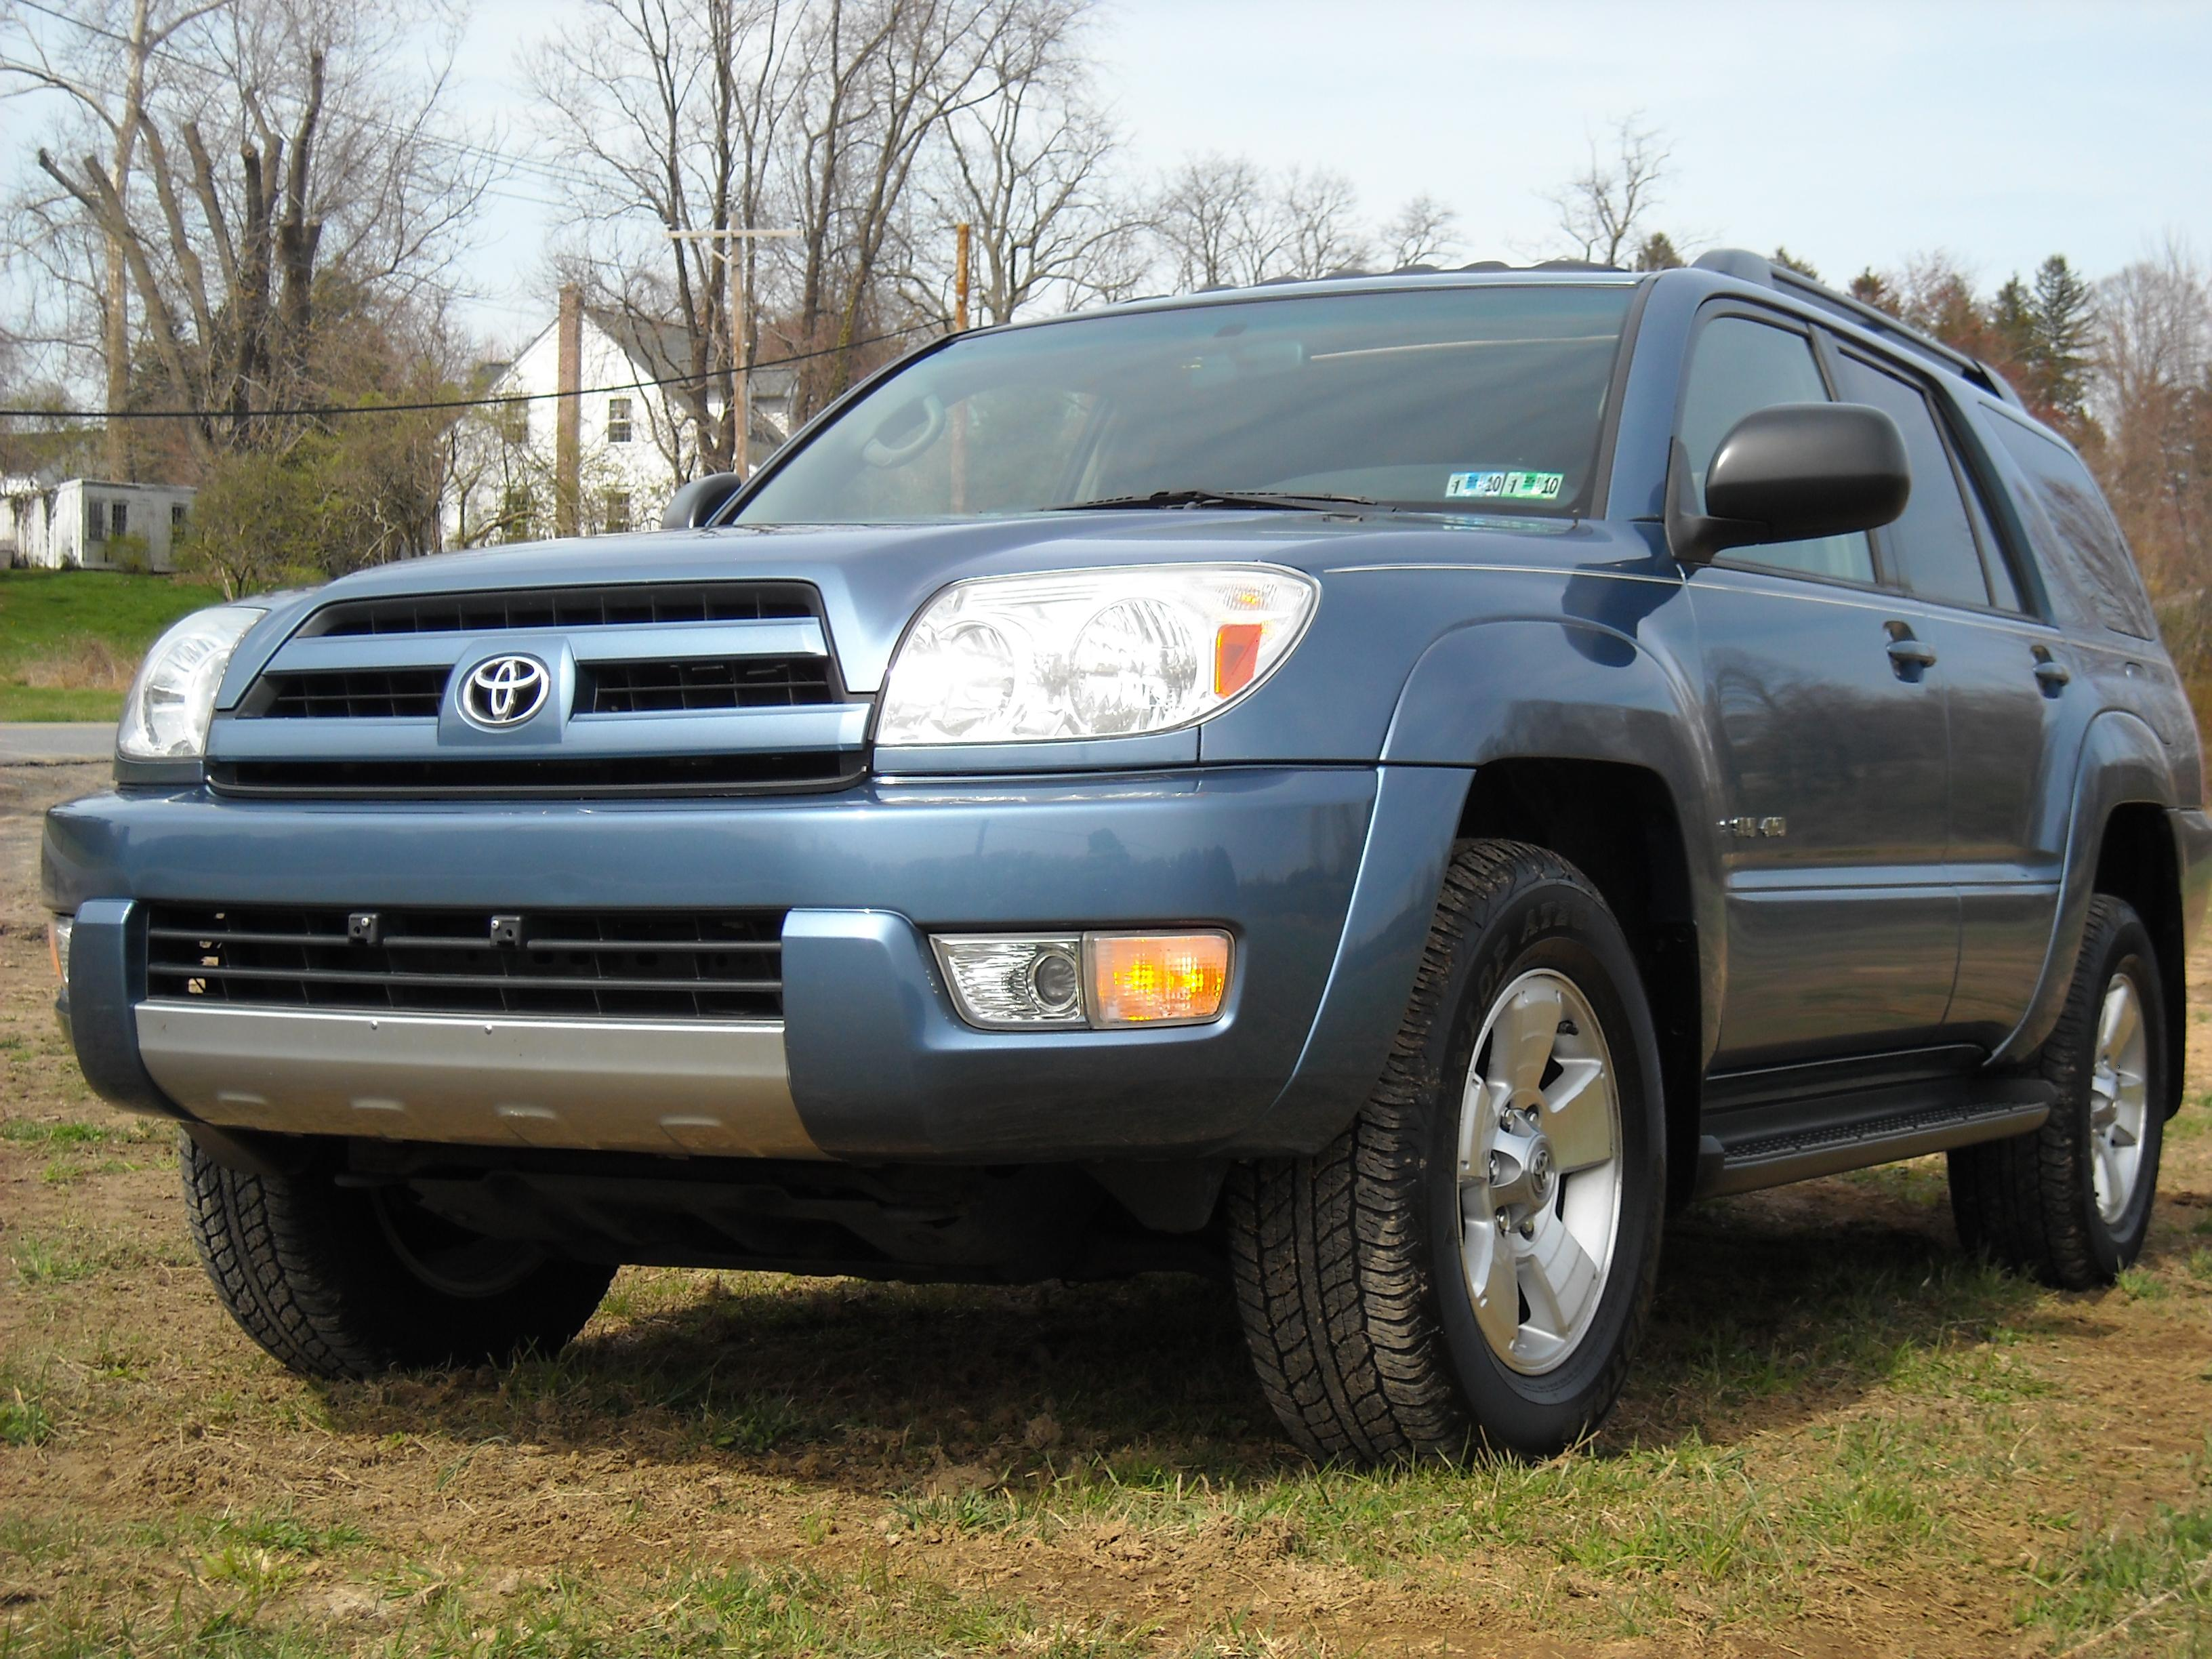 toyotass 2004 toyota 4runner specs photos modification info at cardomain. Black Bedroom Furniture Sets. Home Design Ideas